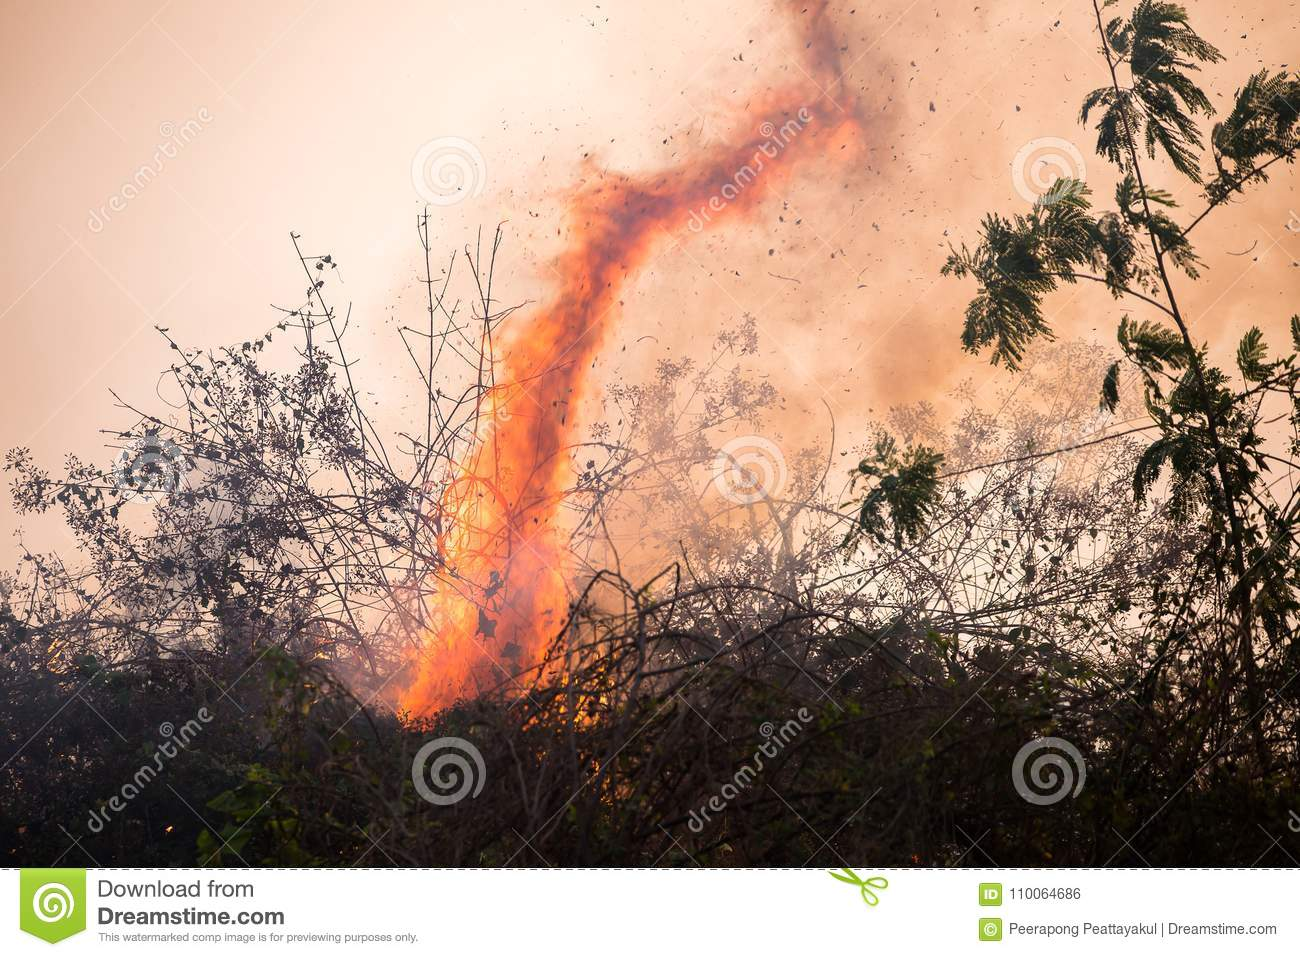 fire. wildfire, burning pine forest in the smoke and flames